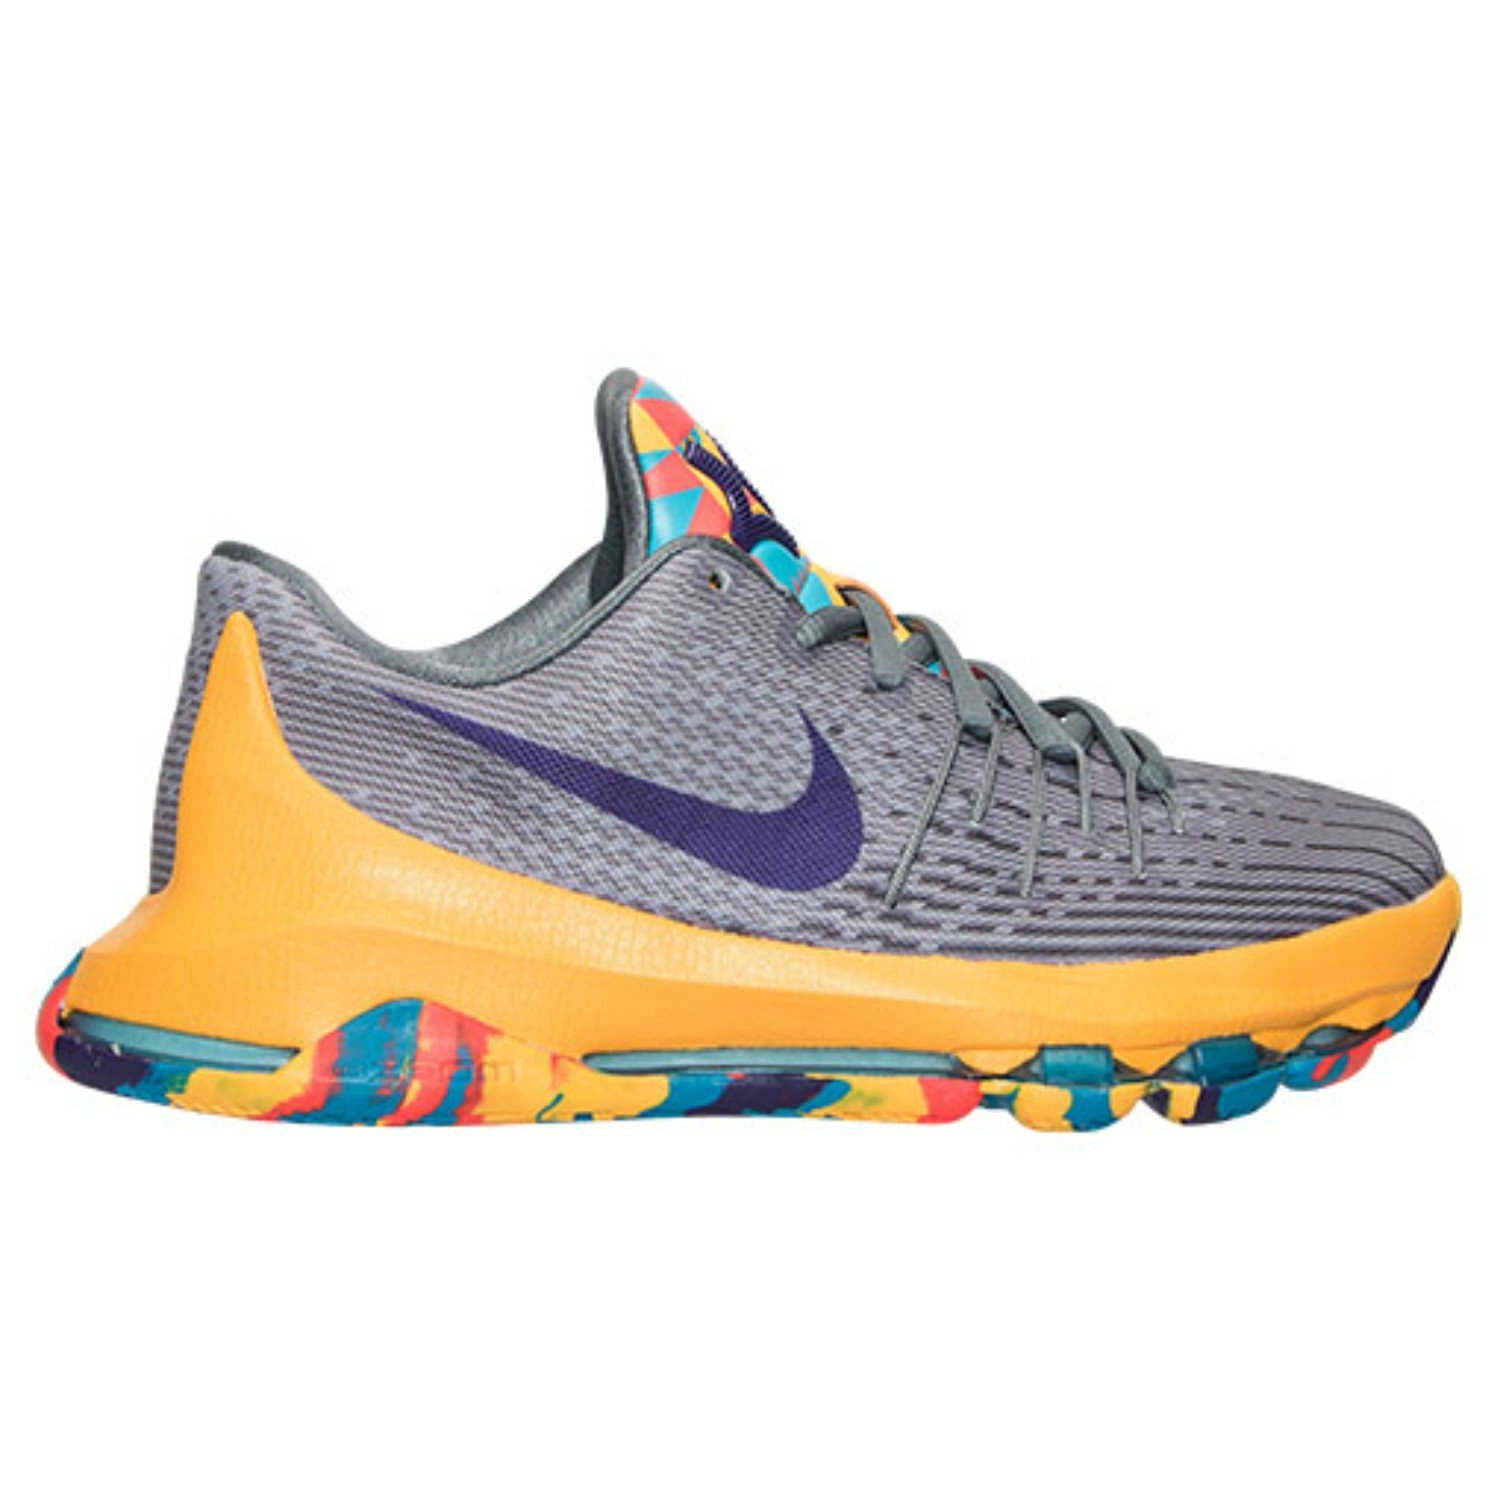 553db4ba6f28 Buy Nike KD 8 (GS) Grey Yellow Kevin Durant Basketball Unisex Youth ...